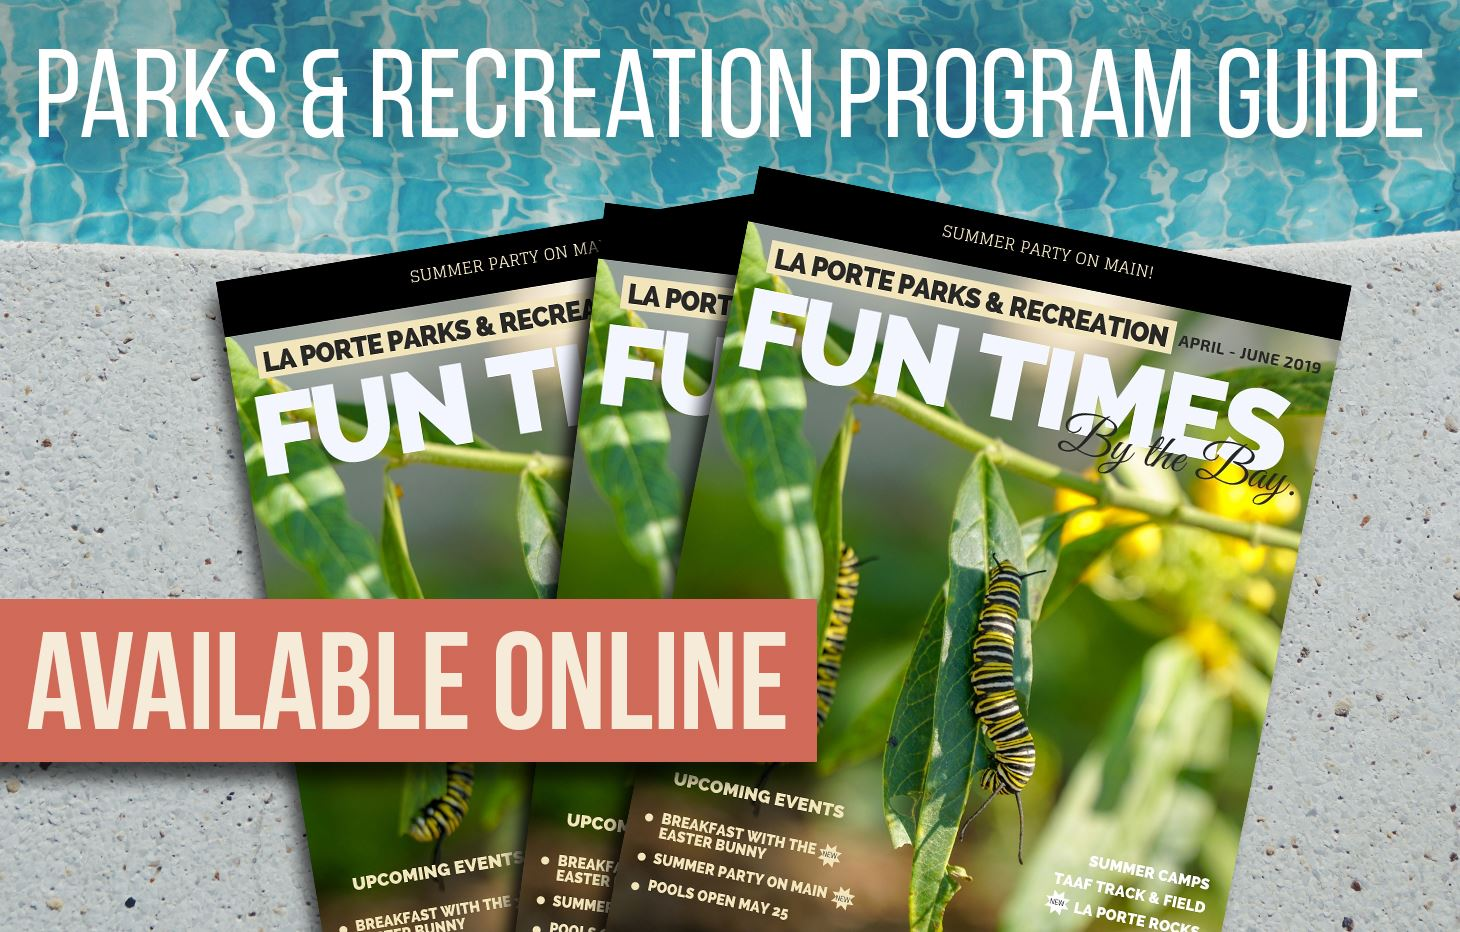 Program Guide Issuu Apr-Jun 2019